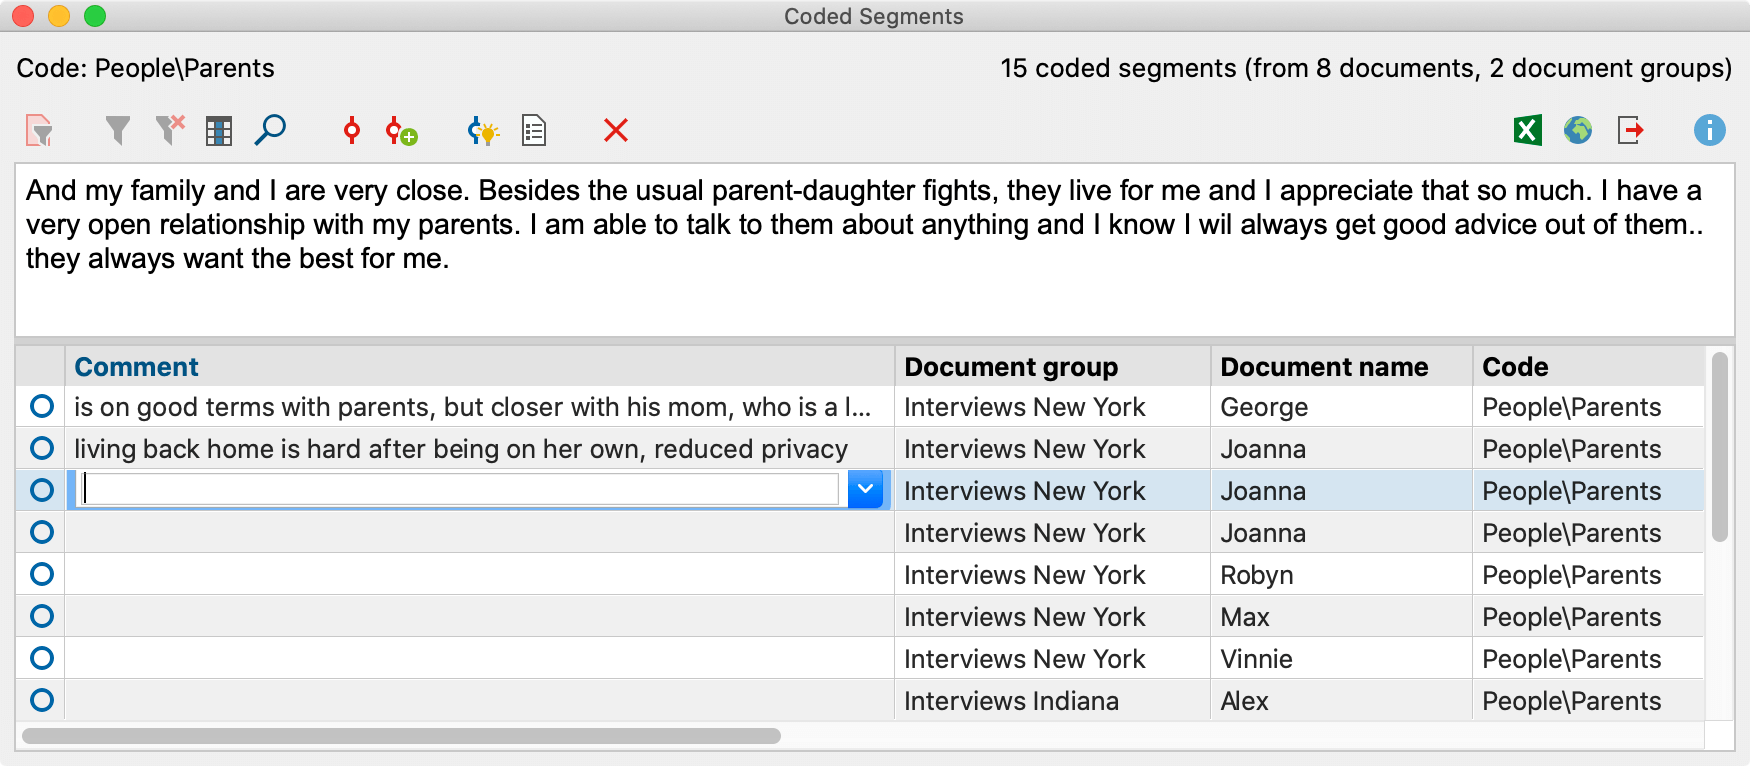 Creating comments for coded segments in the Overview of Coded Segments